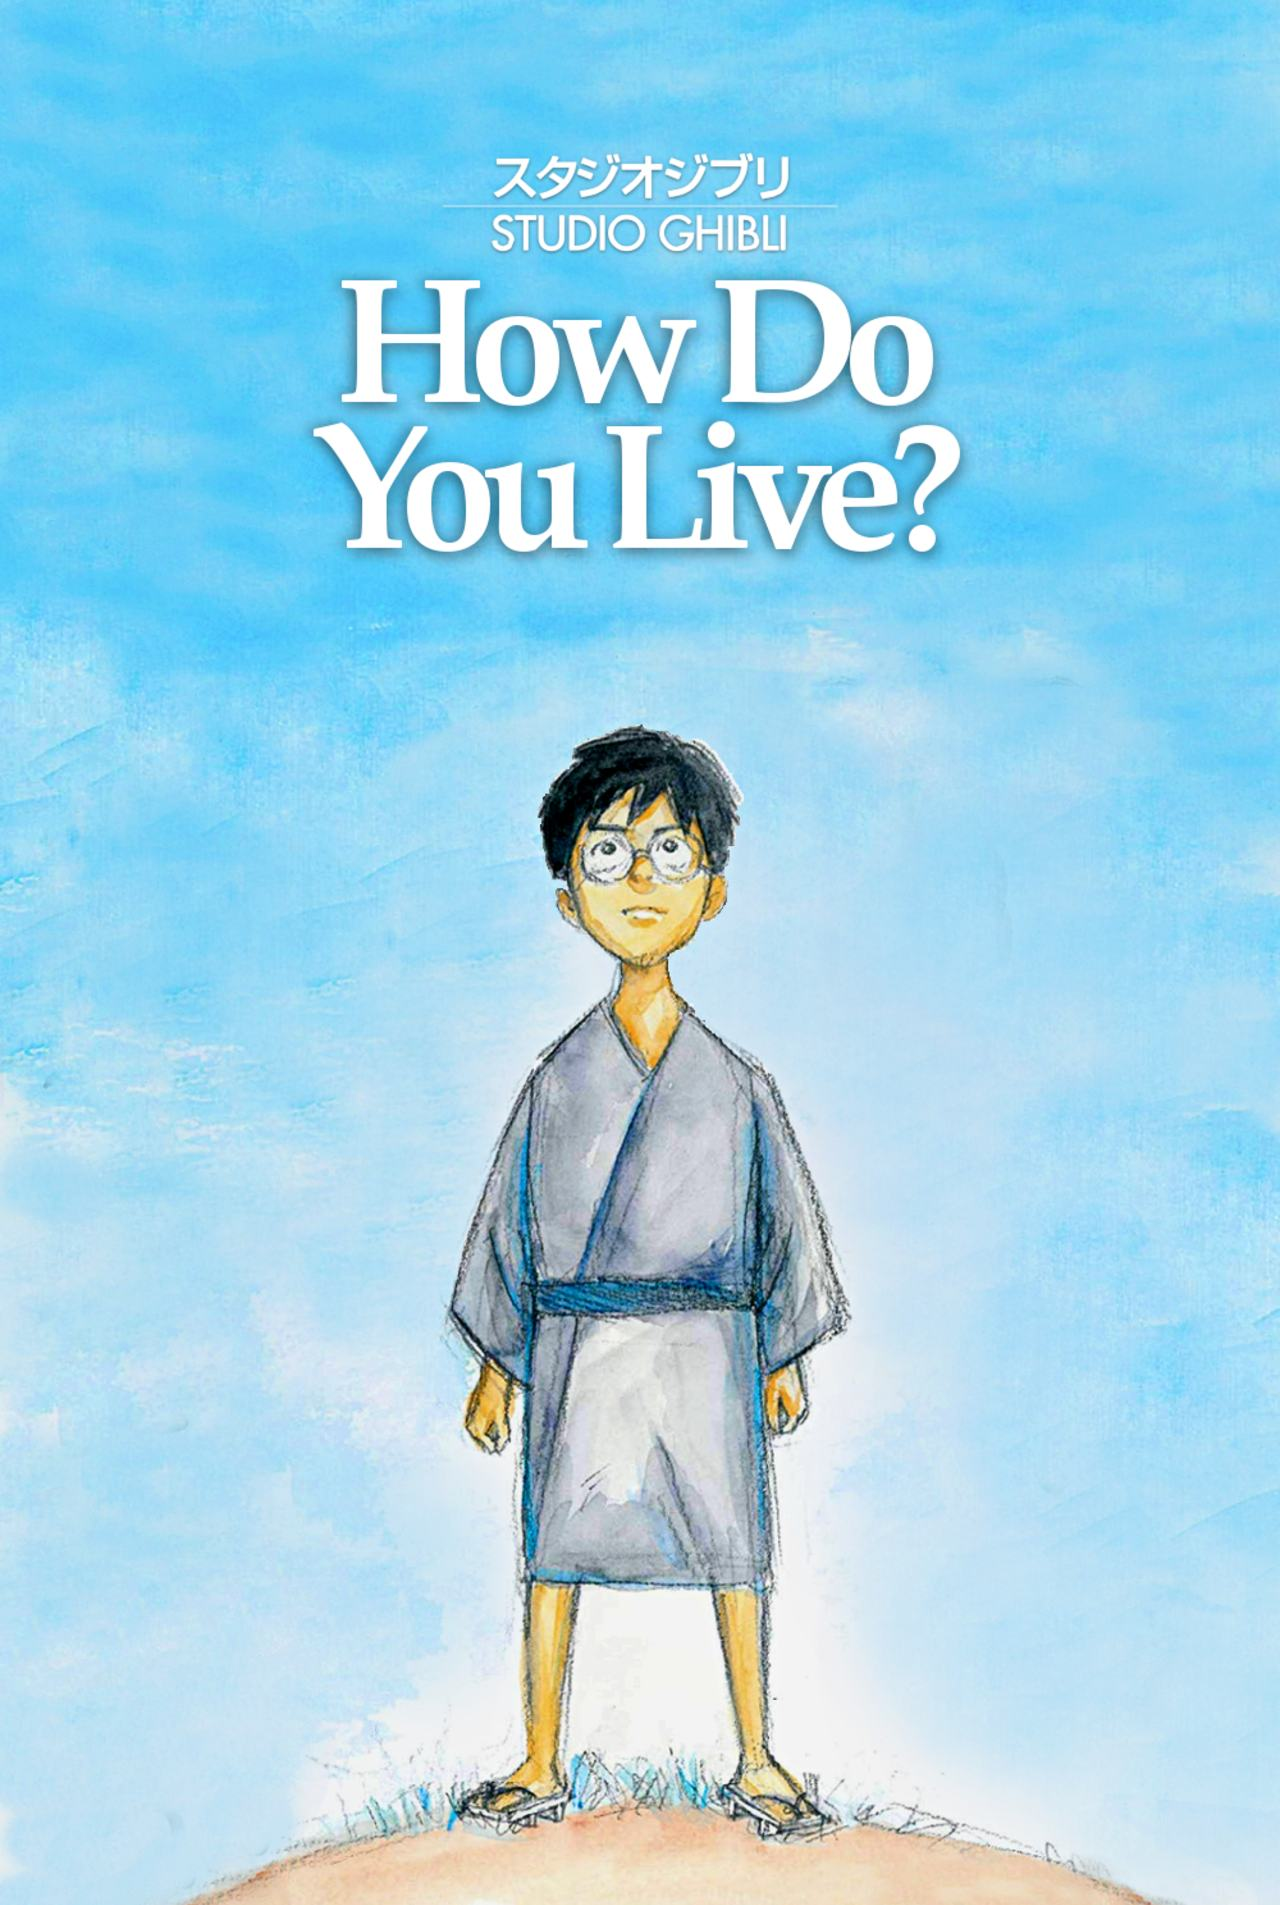 Studio Ghibli estreno How do you Live